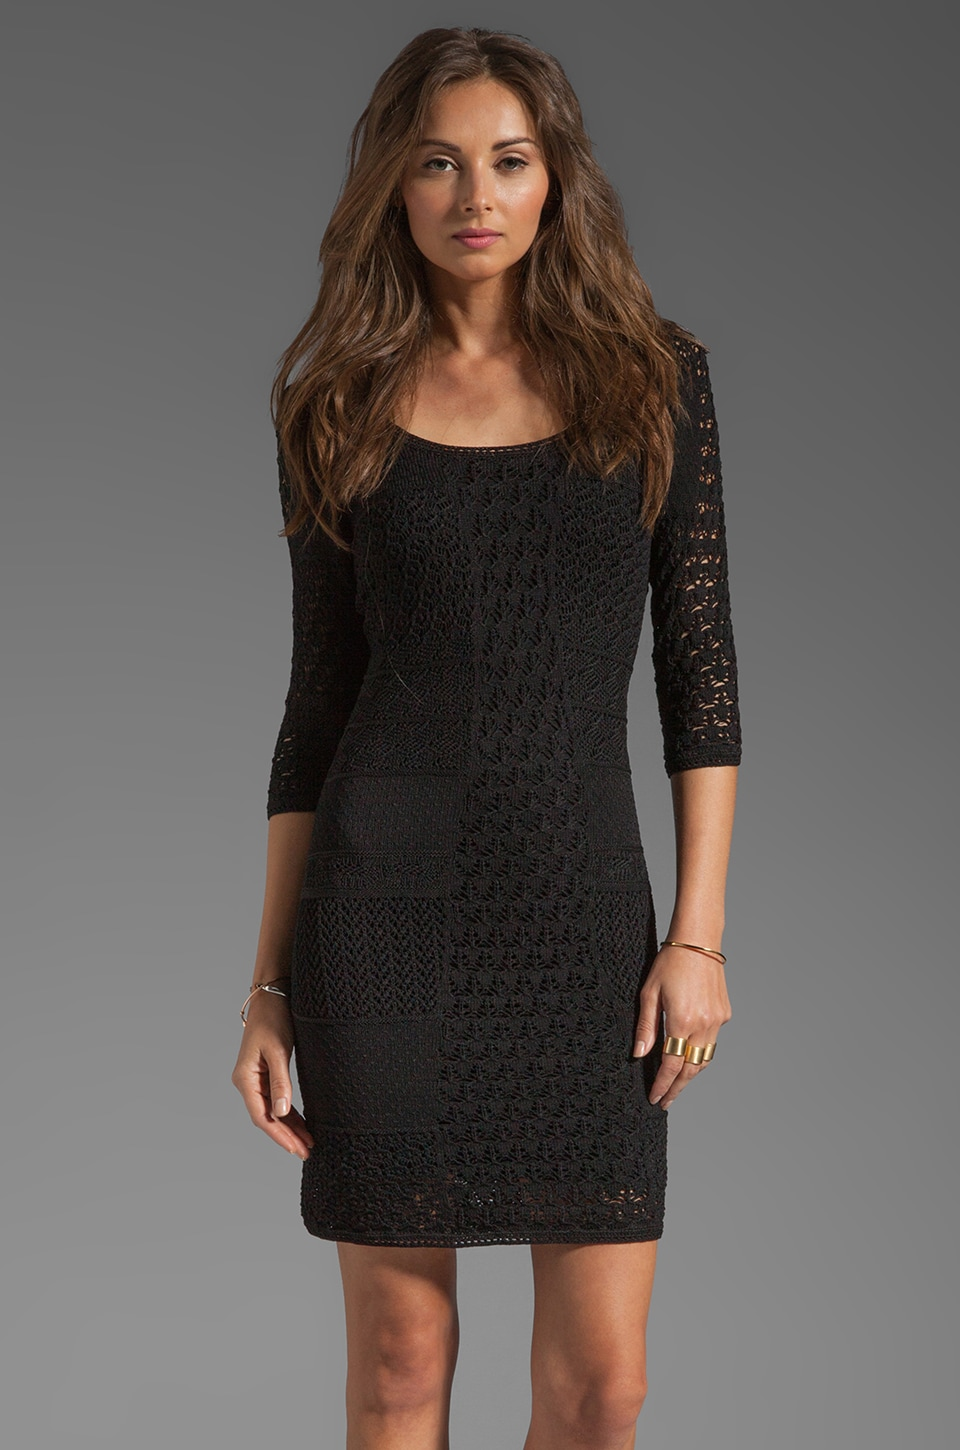 Catherine Malandrino Crochet Scoop Neck Dress in Black